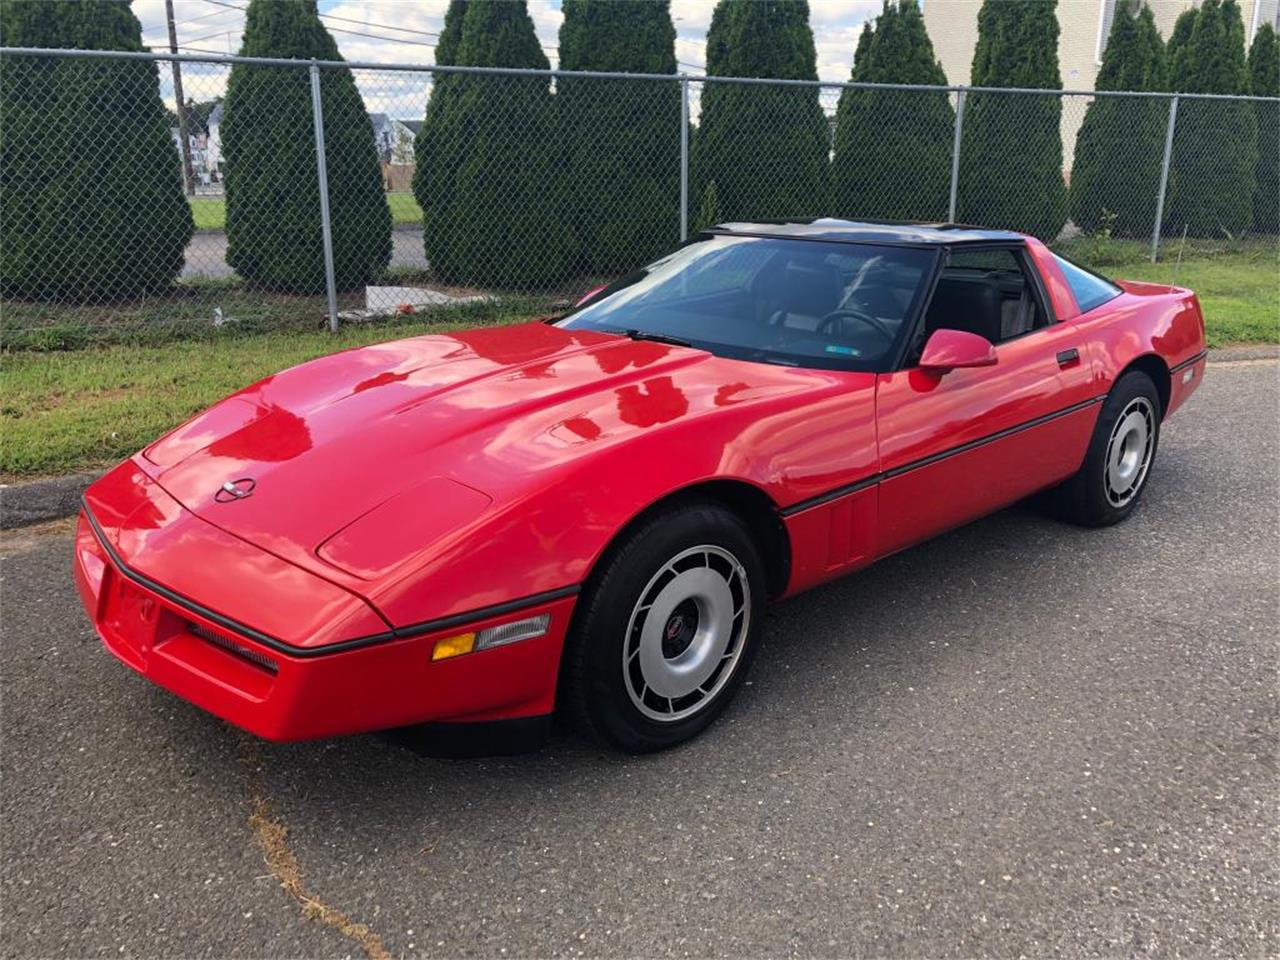 1985 Chevrolet Corvette for sale in Milford City, CT – photo 2